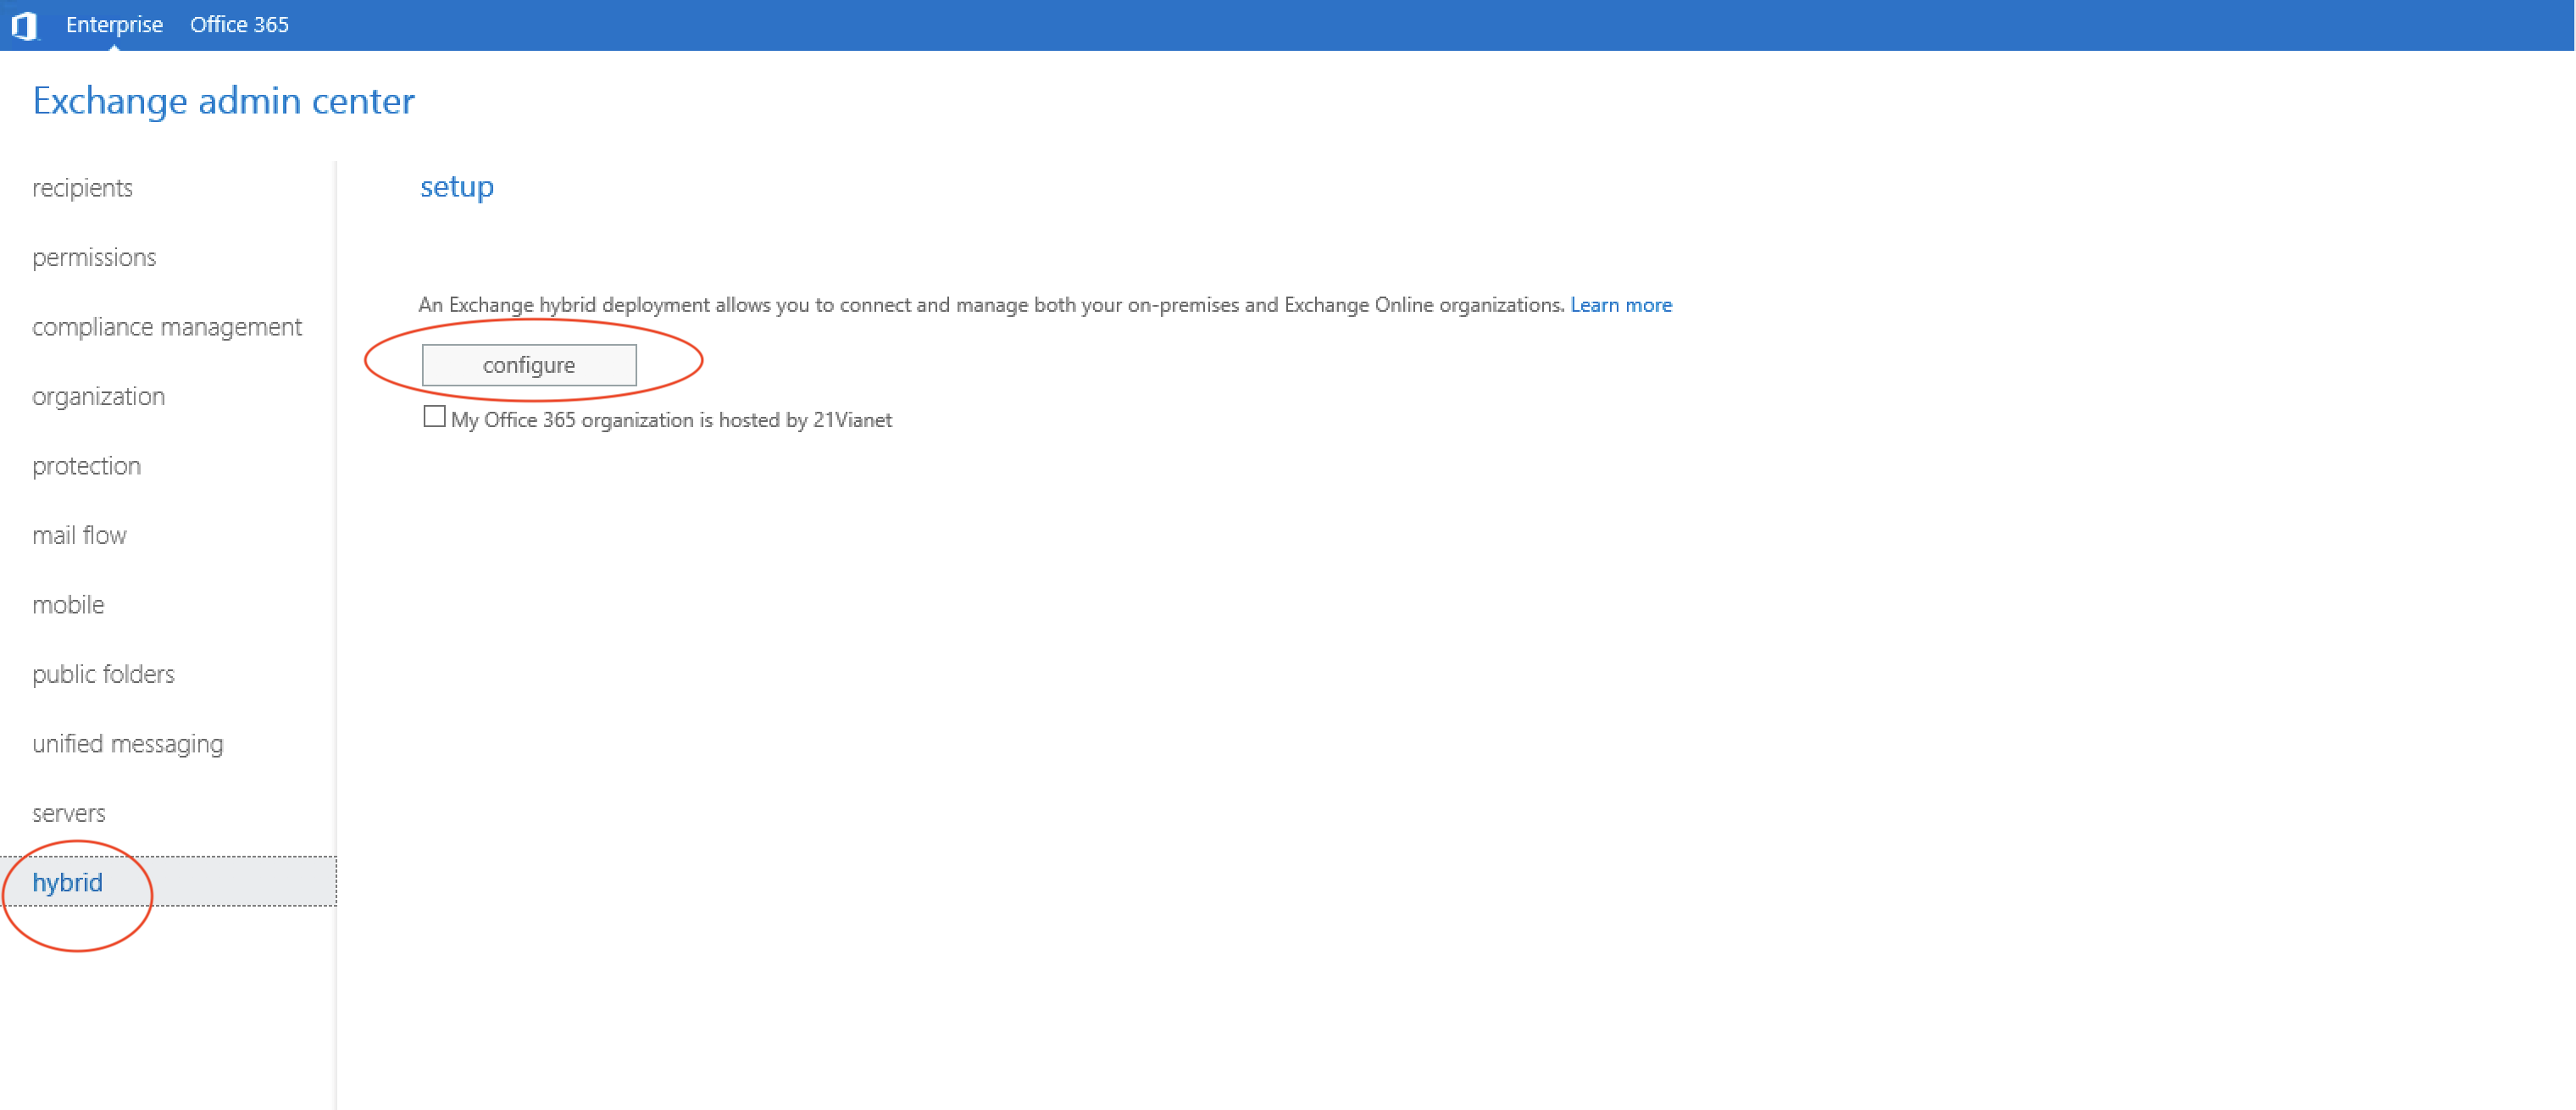 Once You Click On Configure Will Be Asked To Sign In Office 365 Provide The Details Of Global Administrator